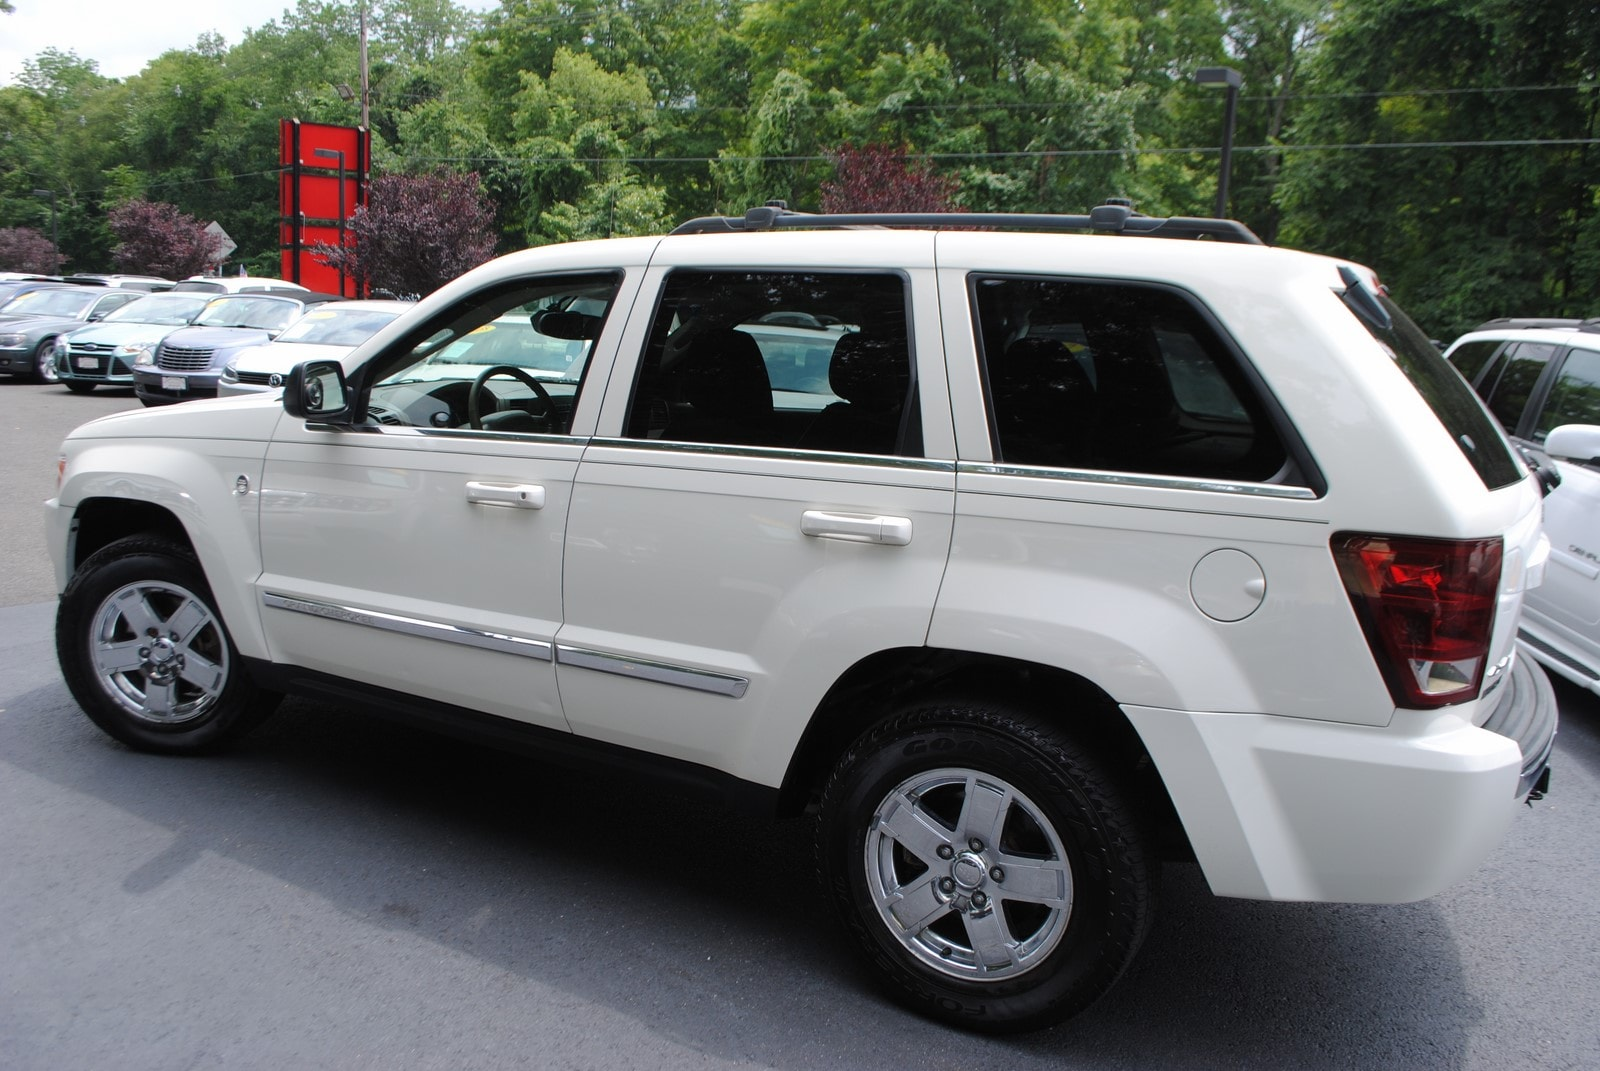 used 2005 jeep grand cherokee for sale west milford nj. Cars Review. Best American Auto & Cars Review